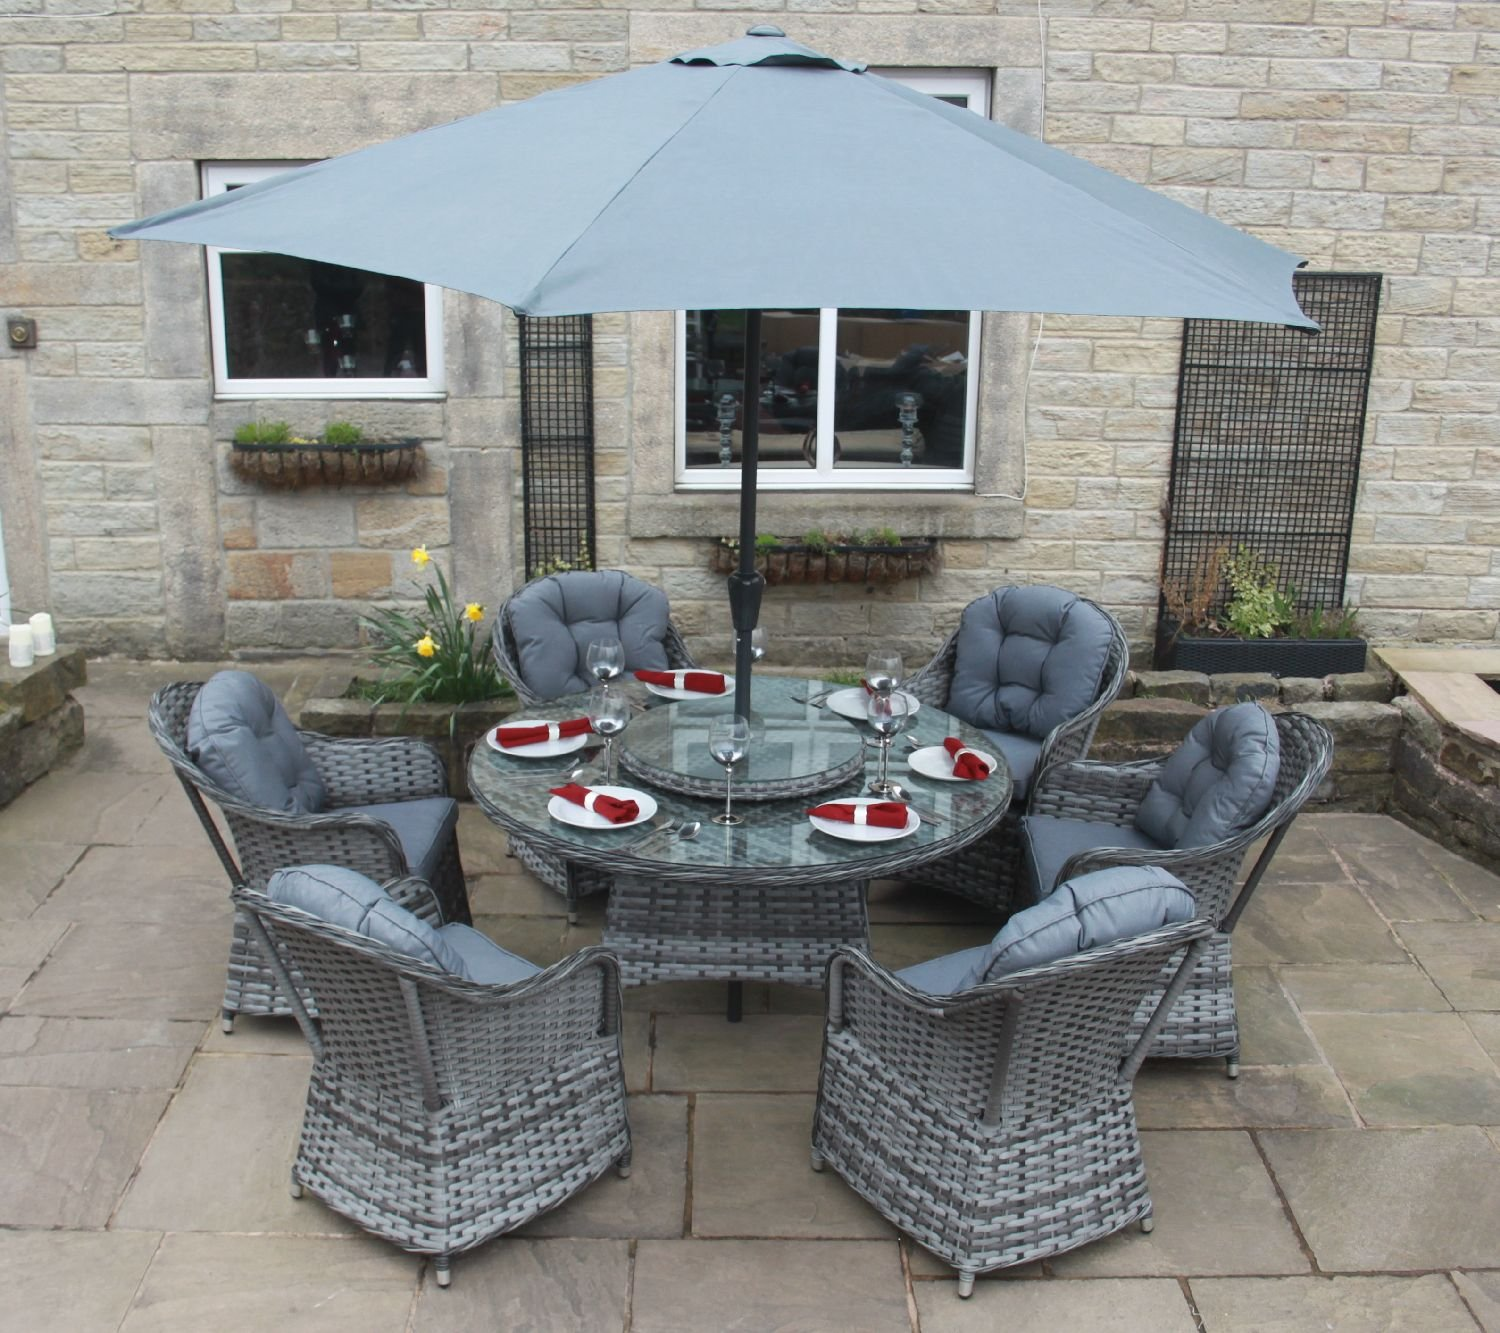 luxury grey rattan garden furniture 6 seat round dining set with parasol amazoncouk garden outdoors